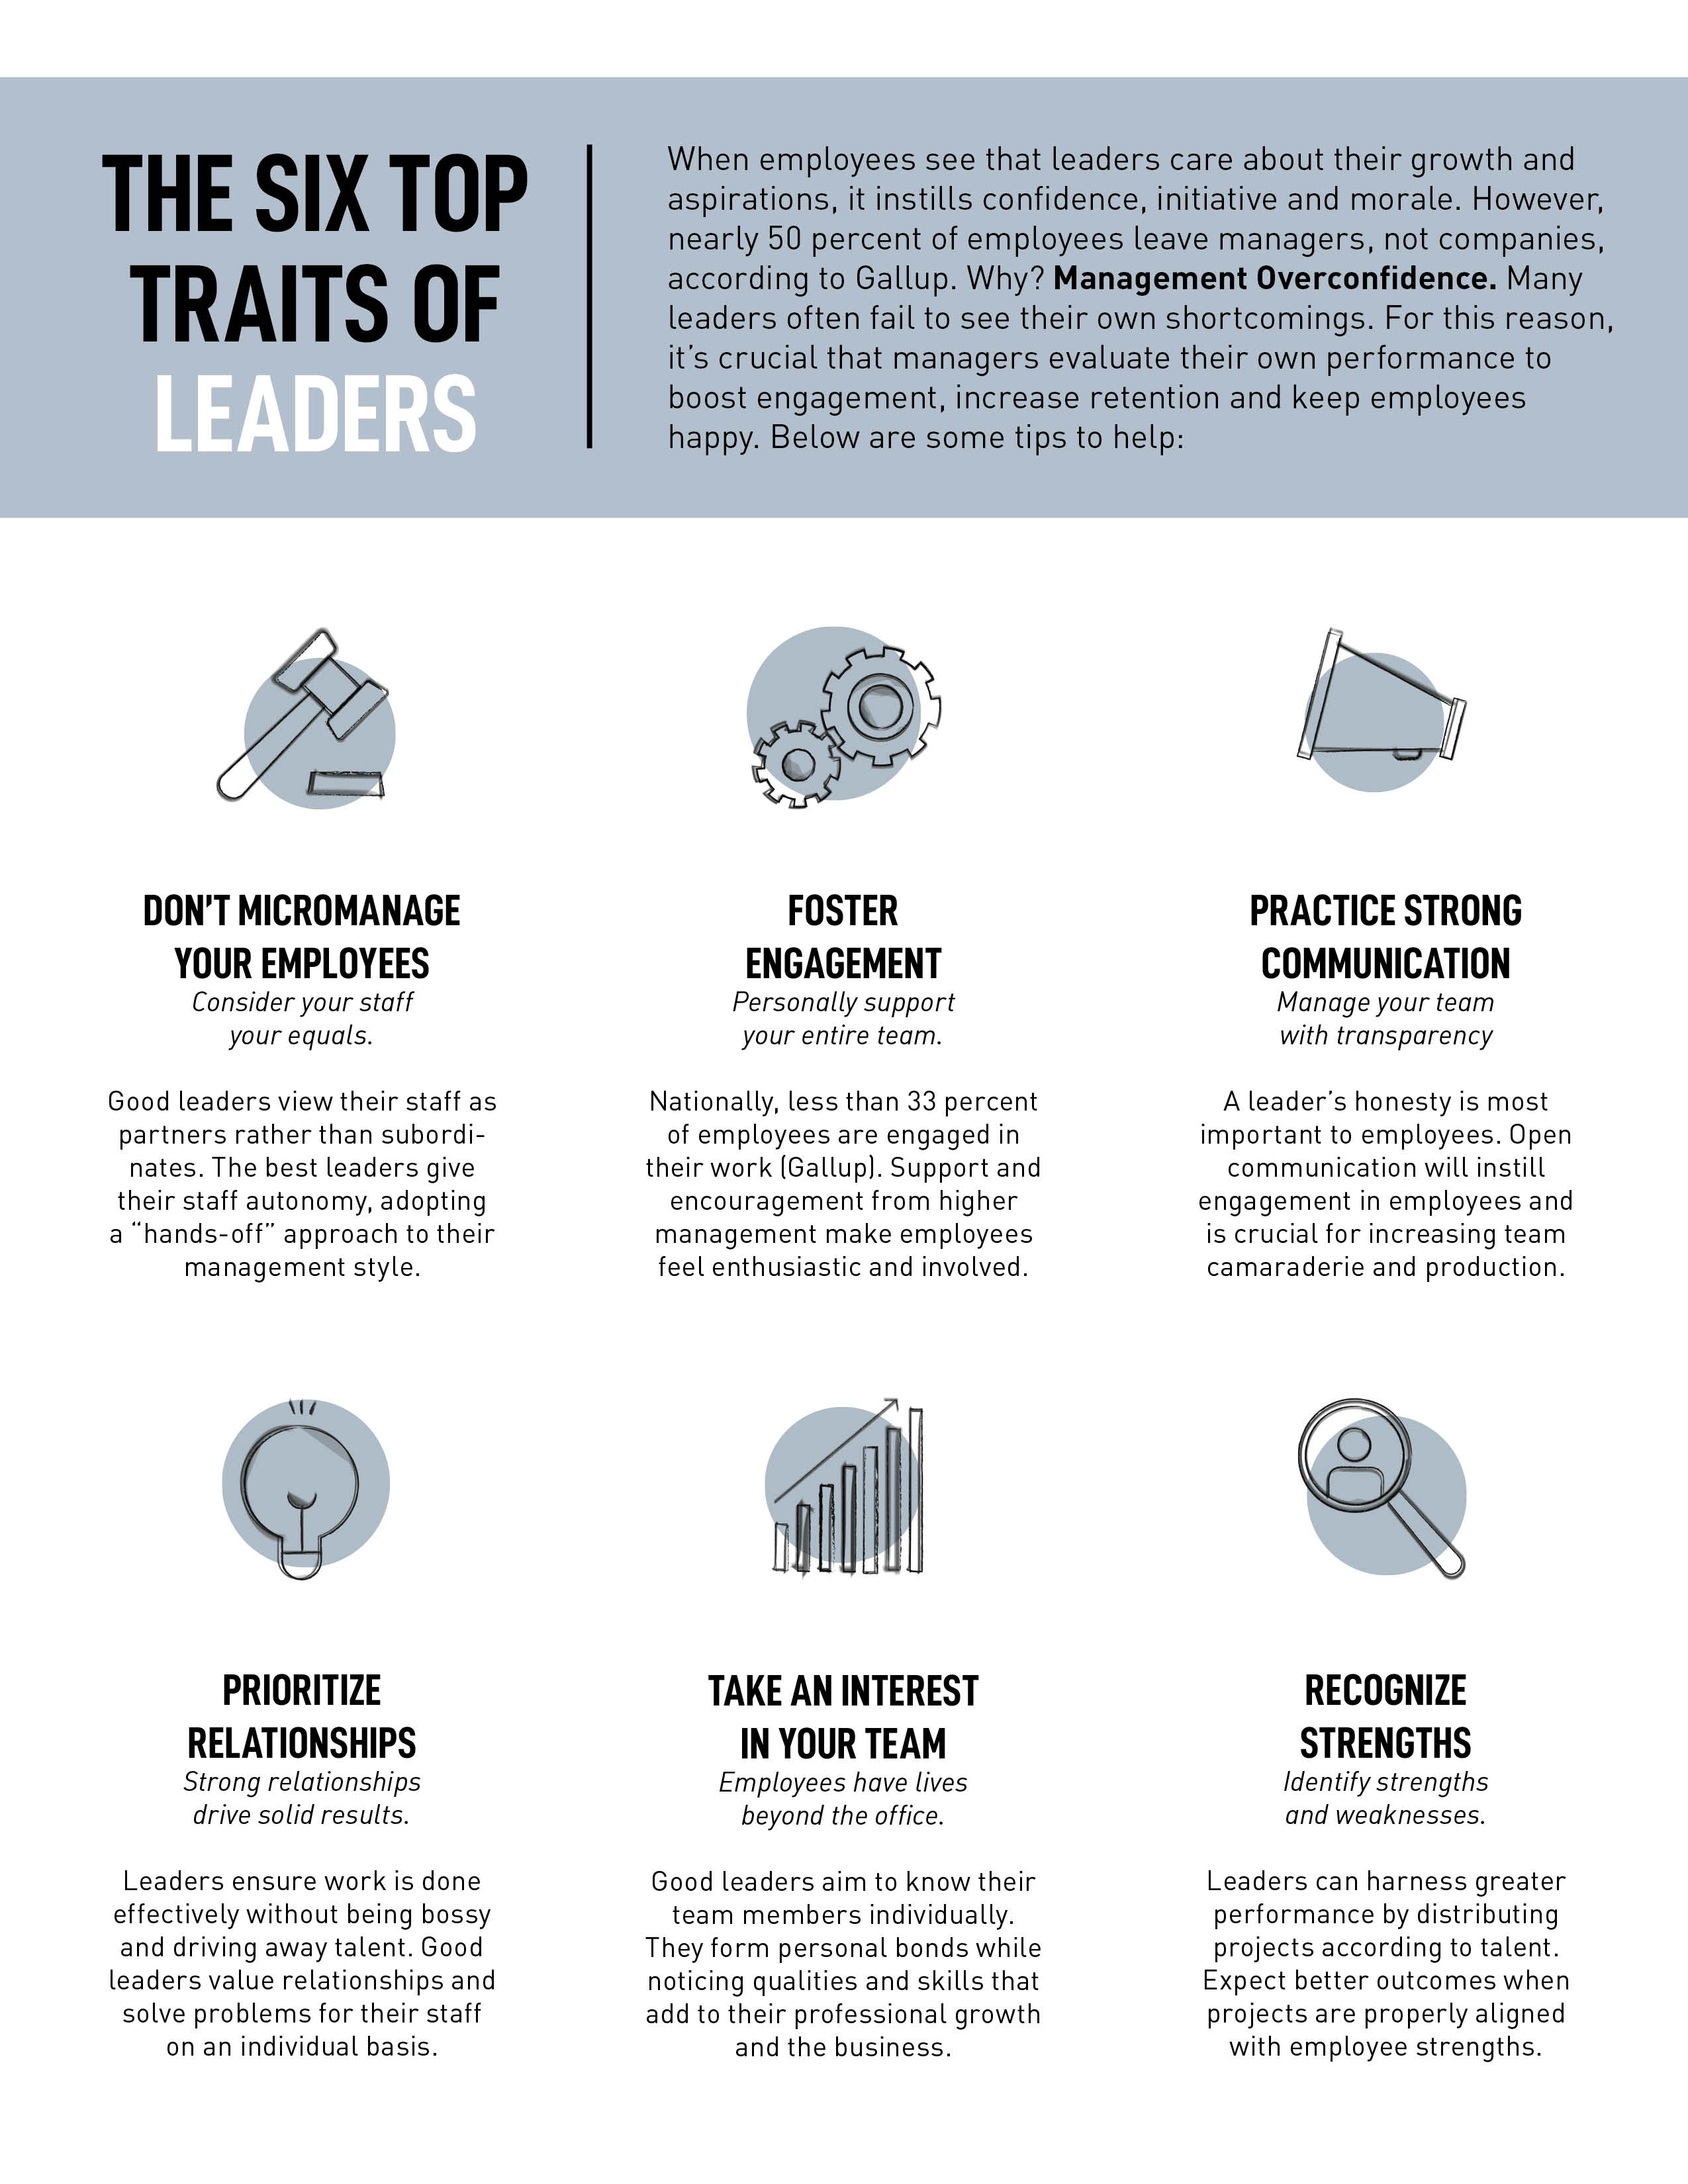 The Six Top Traits of Leaders | Angott Search Group